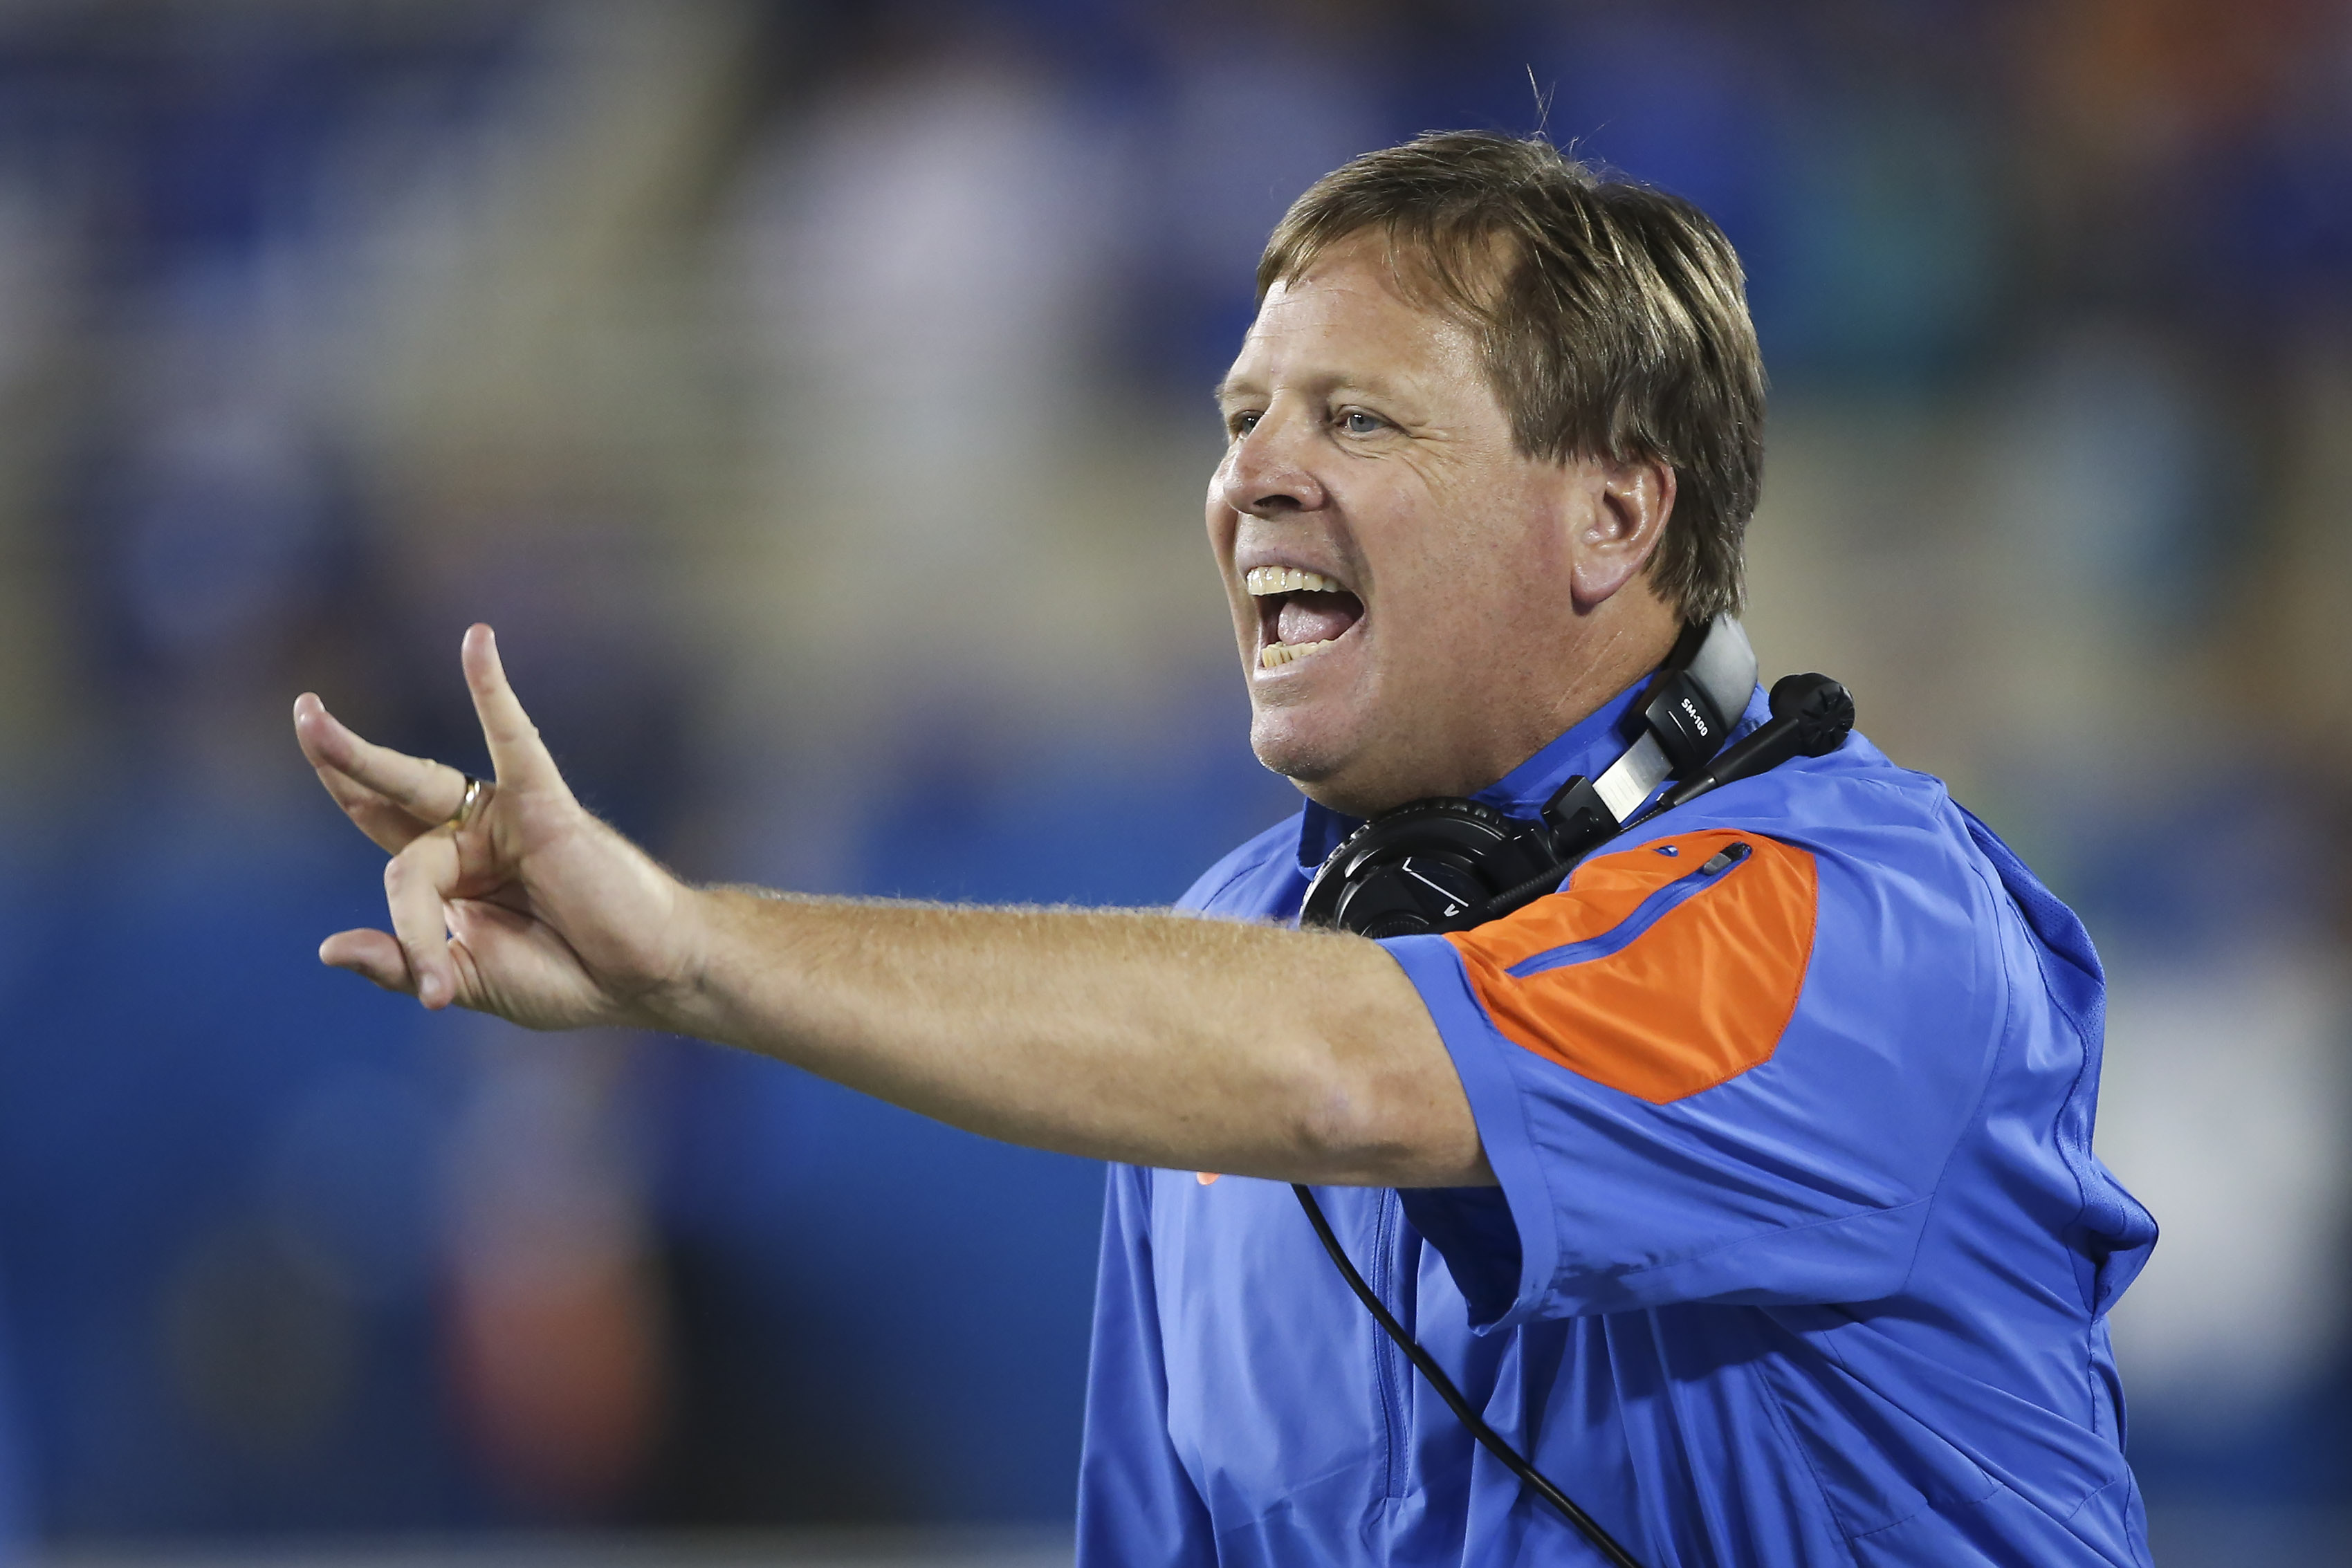 FILE - In this Sept. 19, 2015, file photo, Florida head coach Jim McElwain instructs his team during the second half of an NCAA college football game against Kentucky, in Lexington, Ky. The Florida State-Florida rivalry is nationally relevant again, and t